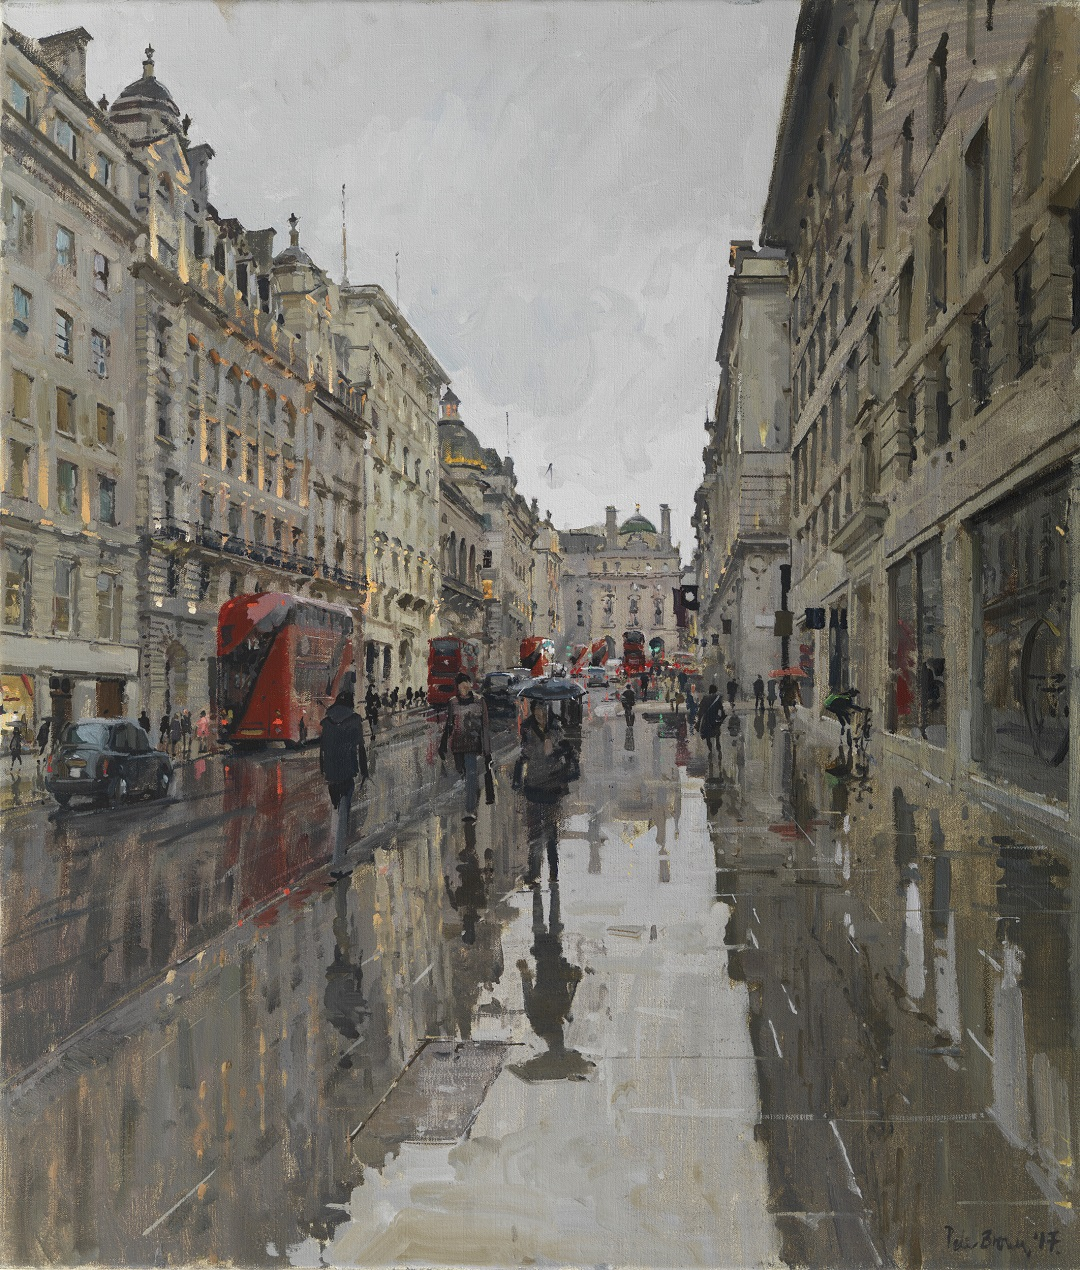 "'Lower Regent Street in the Rain, Reflections' Peter Brown Oil on canvas, 35"" x 30"""